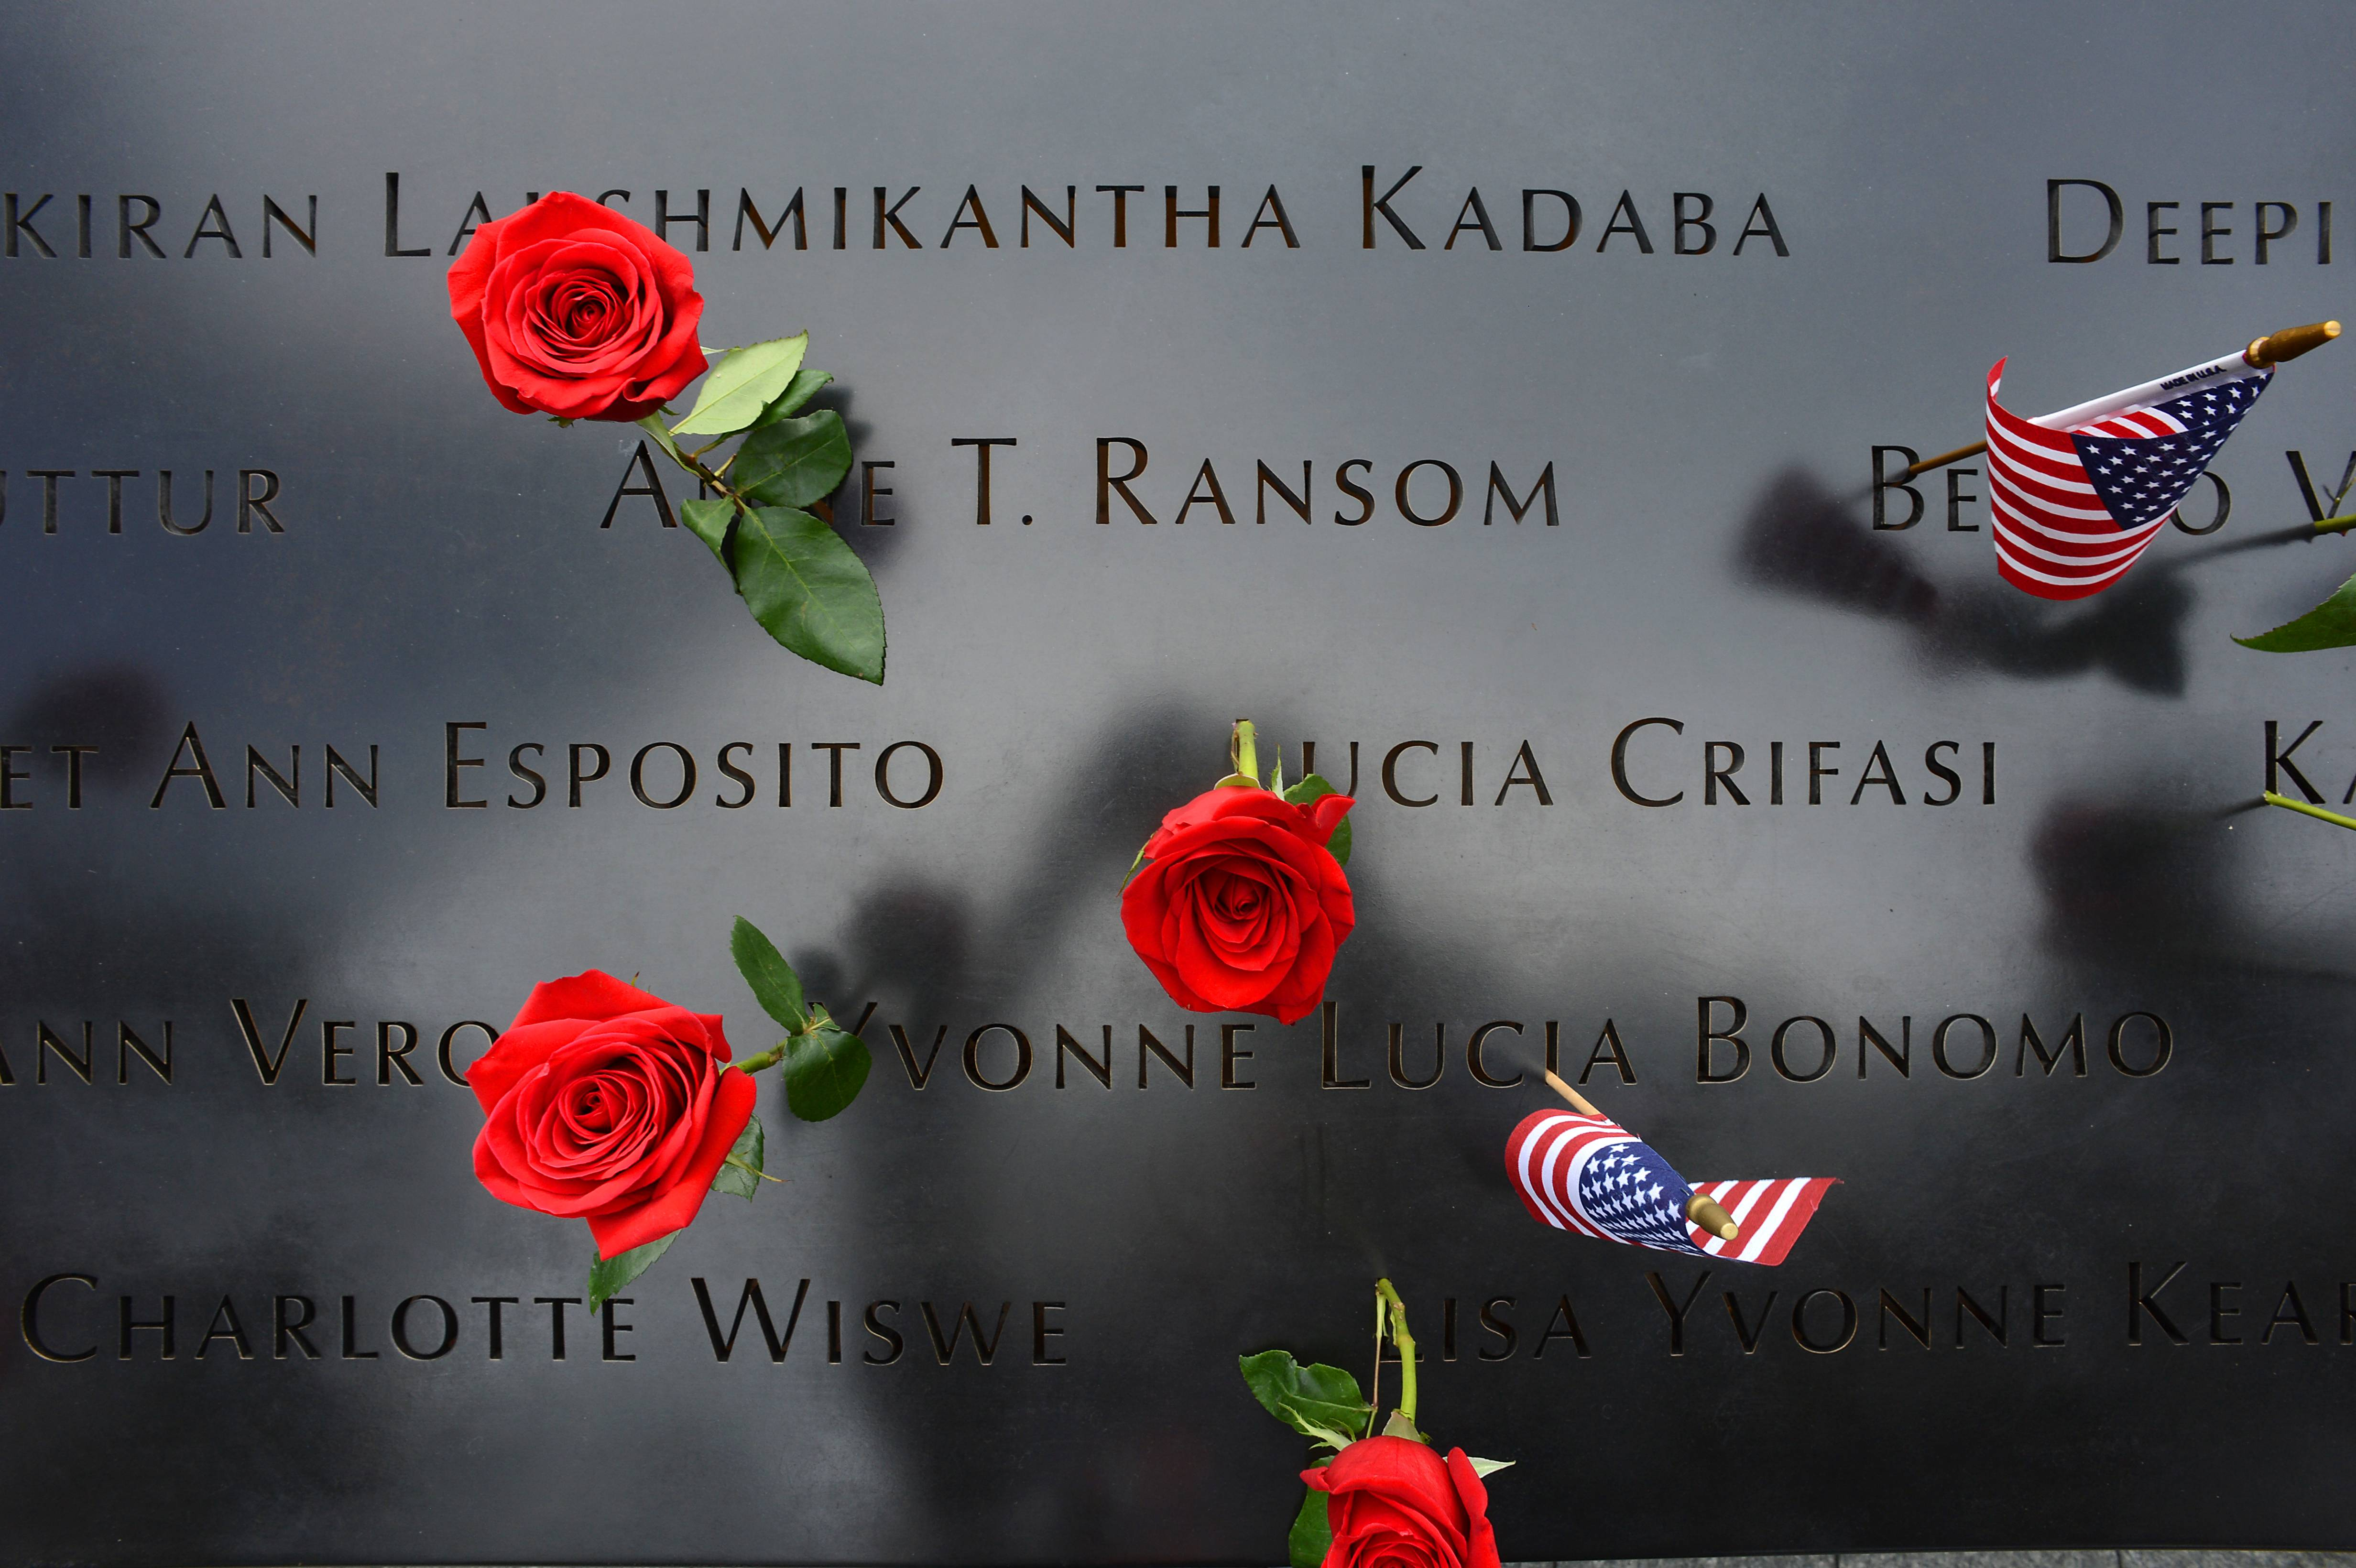 Roses and flags left by loved ones are placed on the names inscribed at the North Pool during memorial observances on the 13th anniversary of the Sept. 11 terror attacks on the World Trade Center in New York, Thursday, Sept. 11, 2014. Family and friends of those who died read the names of the nearly 3,000 people killed in New York, at the Pentagon and near Shanksville, Pennsylvania.